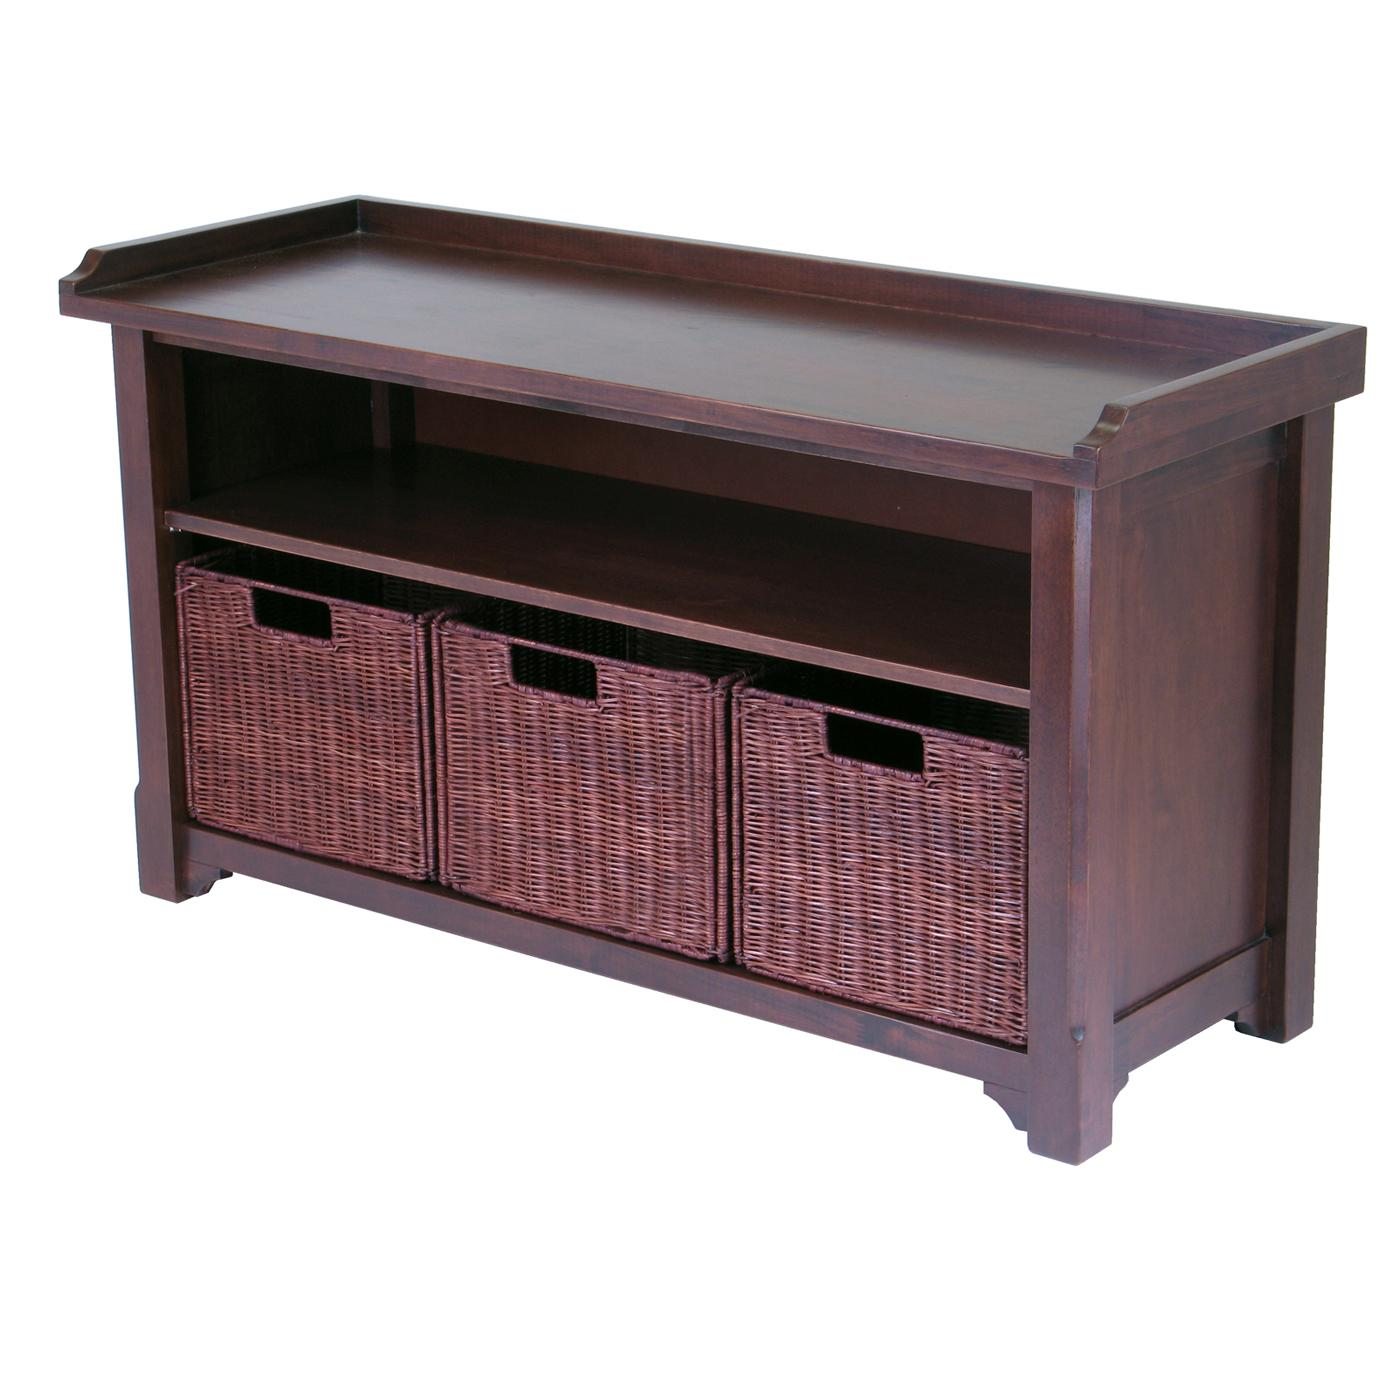 Winsome bench with storage shelf and 3 small baskets 2 cartons by oj commerce 94341 Storage benches